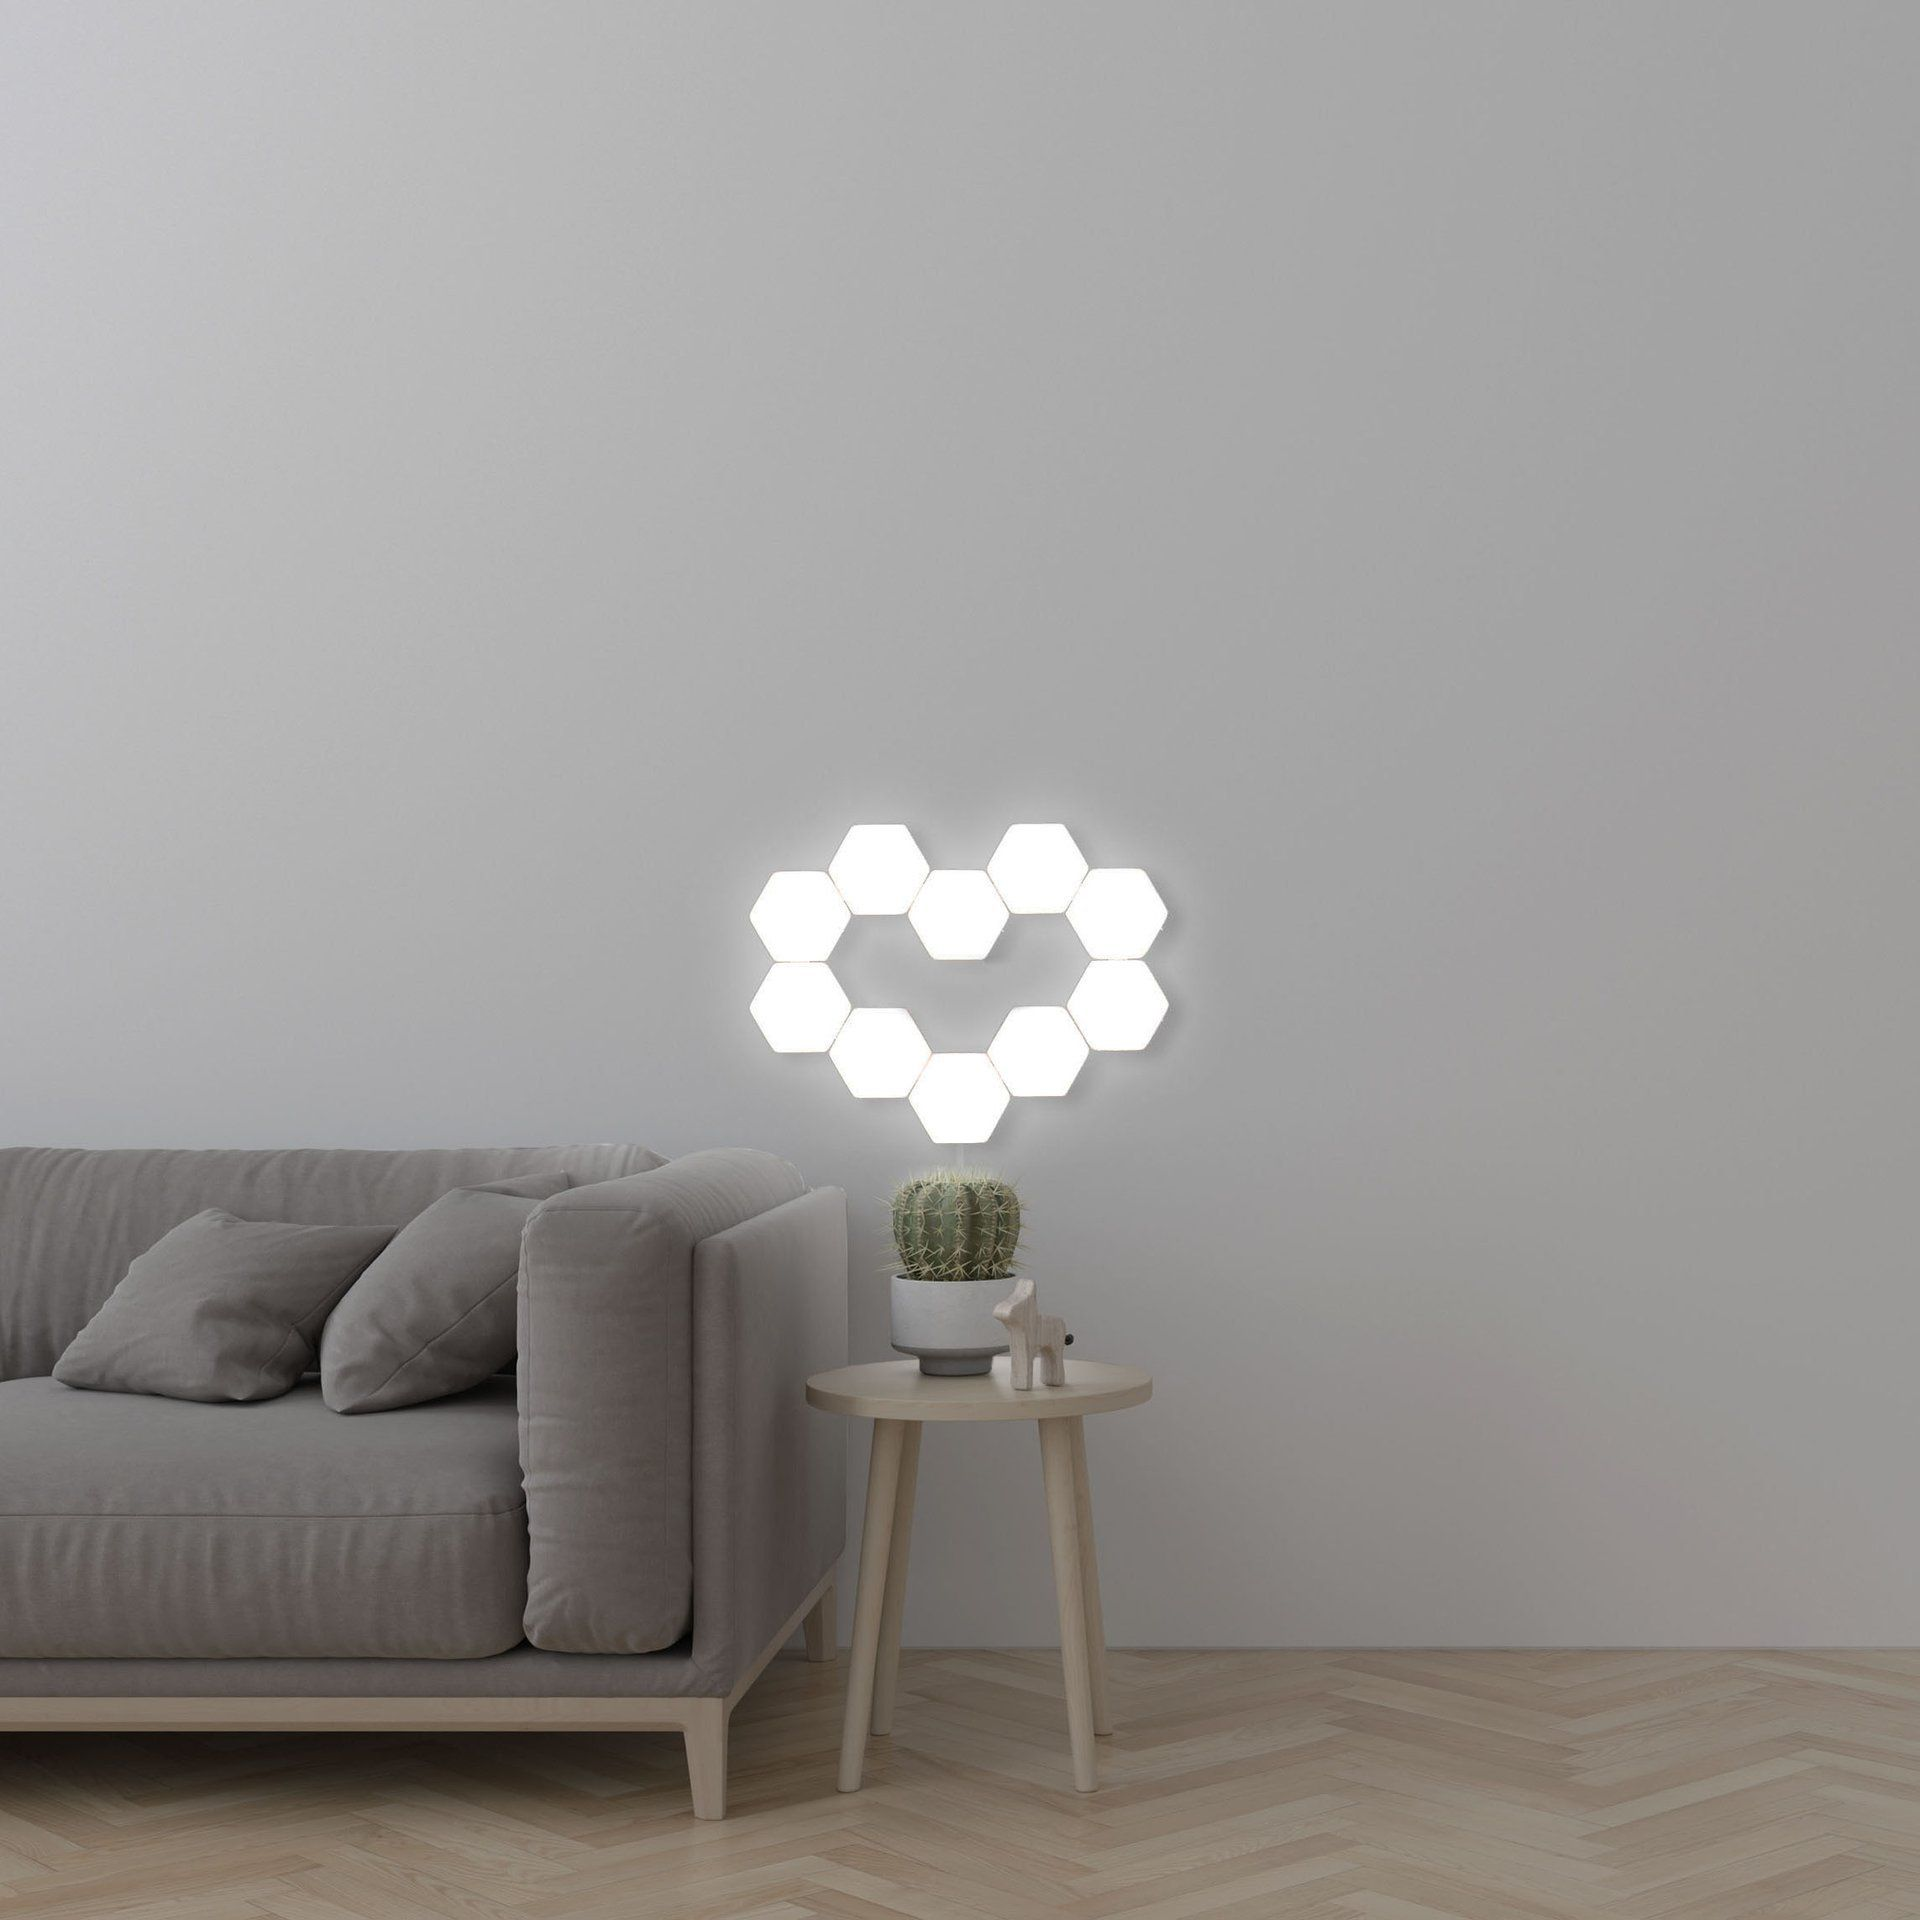 Touch Sensitive Led Lamp Bright Rooms Modern Wall Lamp Wall Lights